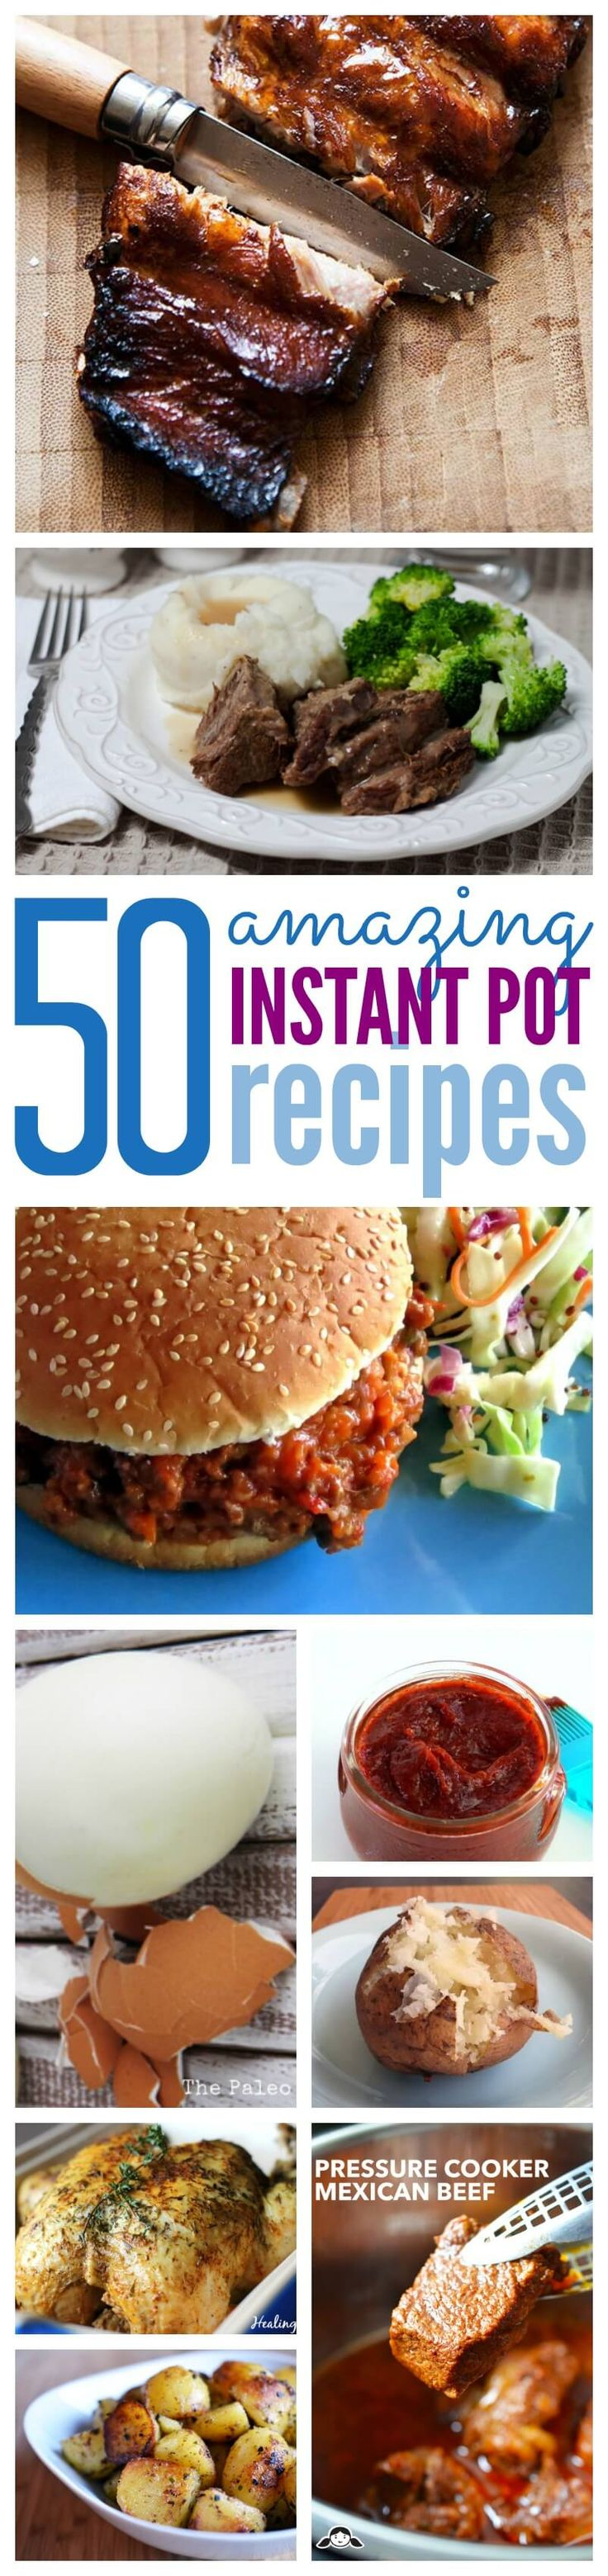 I recently got an Instant Pot for Christmas and I have to admit I am still learning to Love my Instant Pot and we are slowing discovering New Instant Pot Recipes that we love. Everyone I know that has an Instant Pot LOVES it and they swear by it making all kinds of delicious recipes! I am just getting started and so I thought I would put together a list of Instant Pot Recipes that you can try!